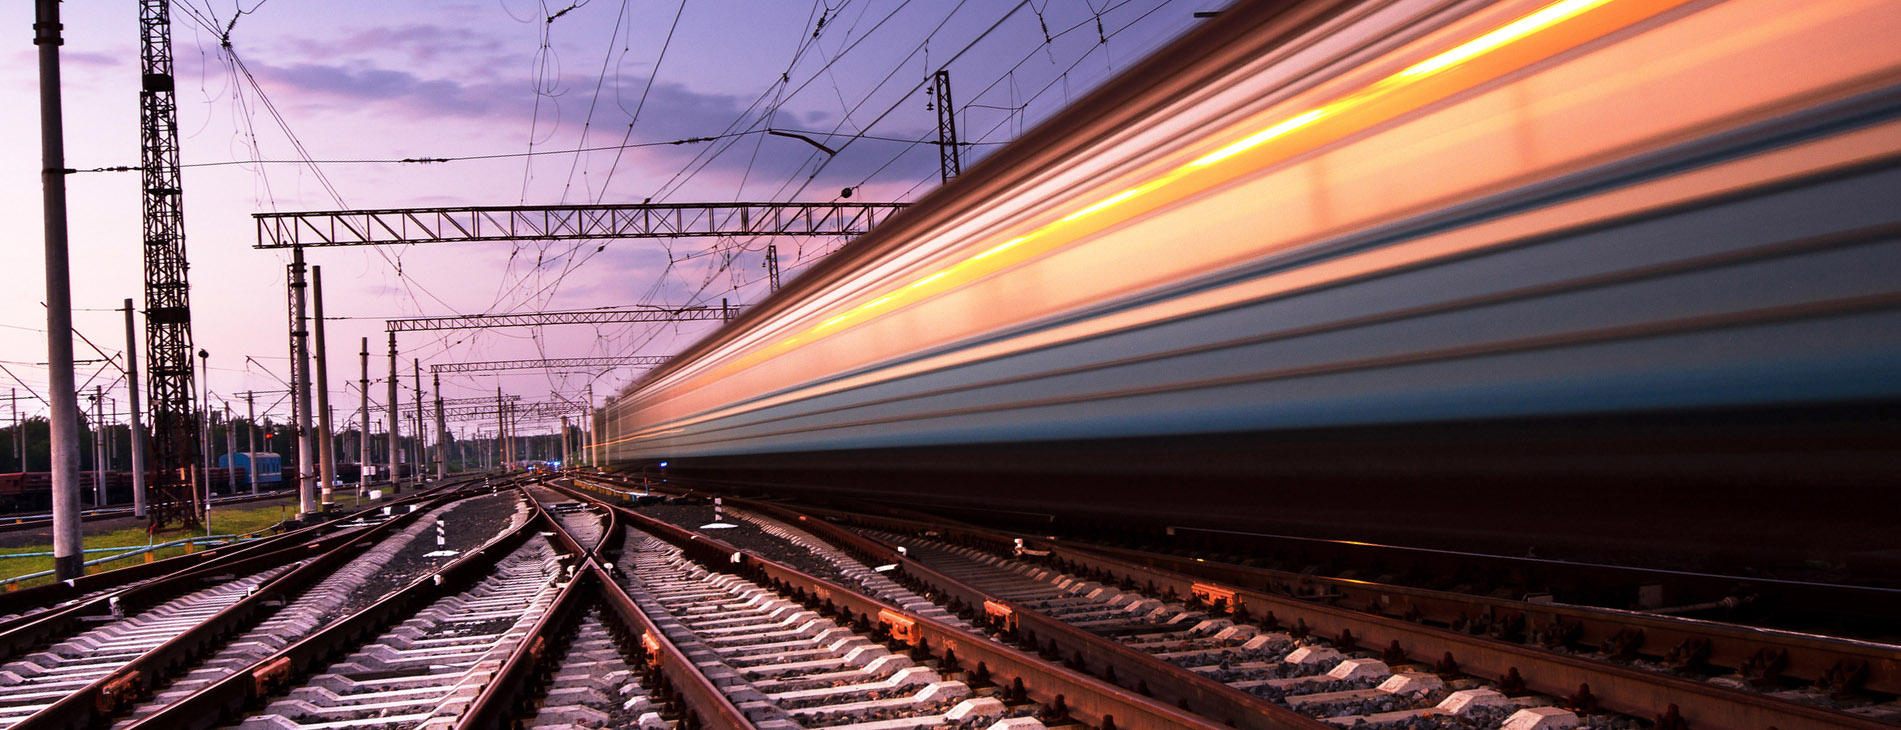 FFG Harmony project: Artificial intelligence to increase rail track safety (iStock / den-belitsky) /